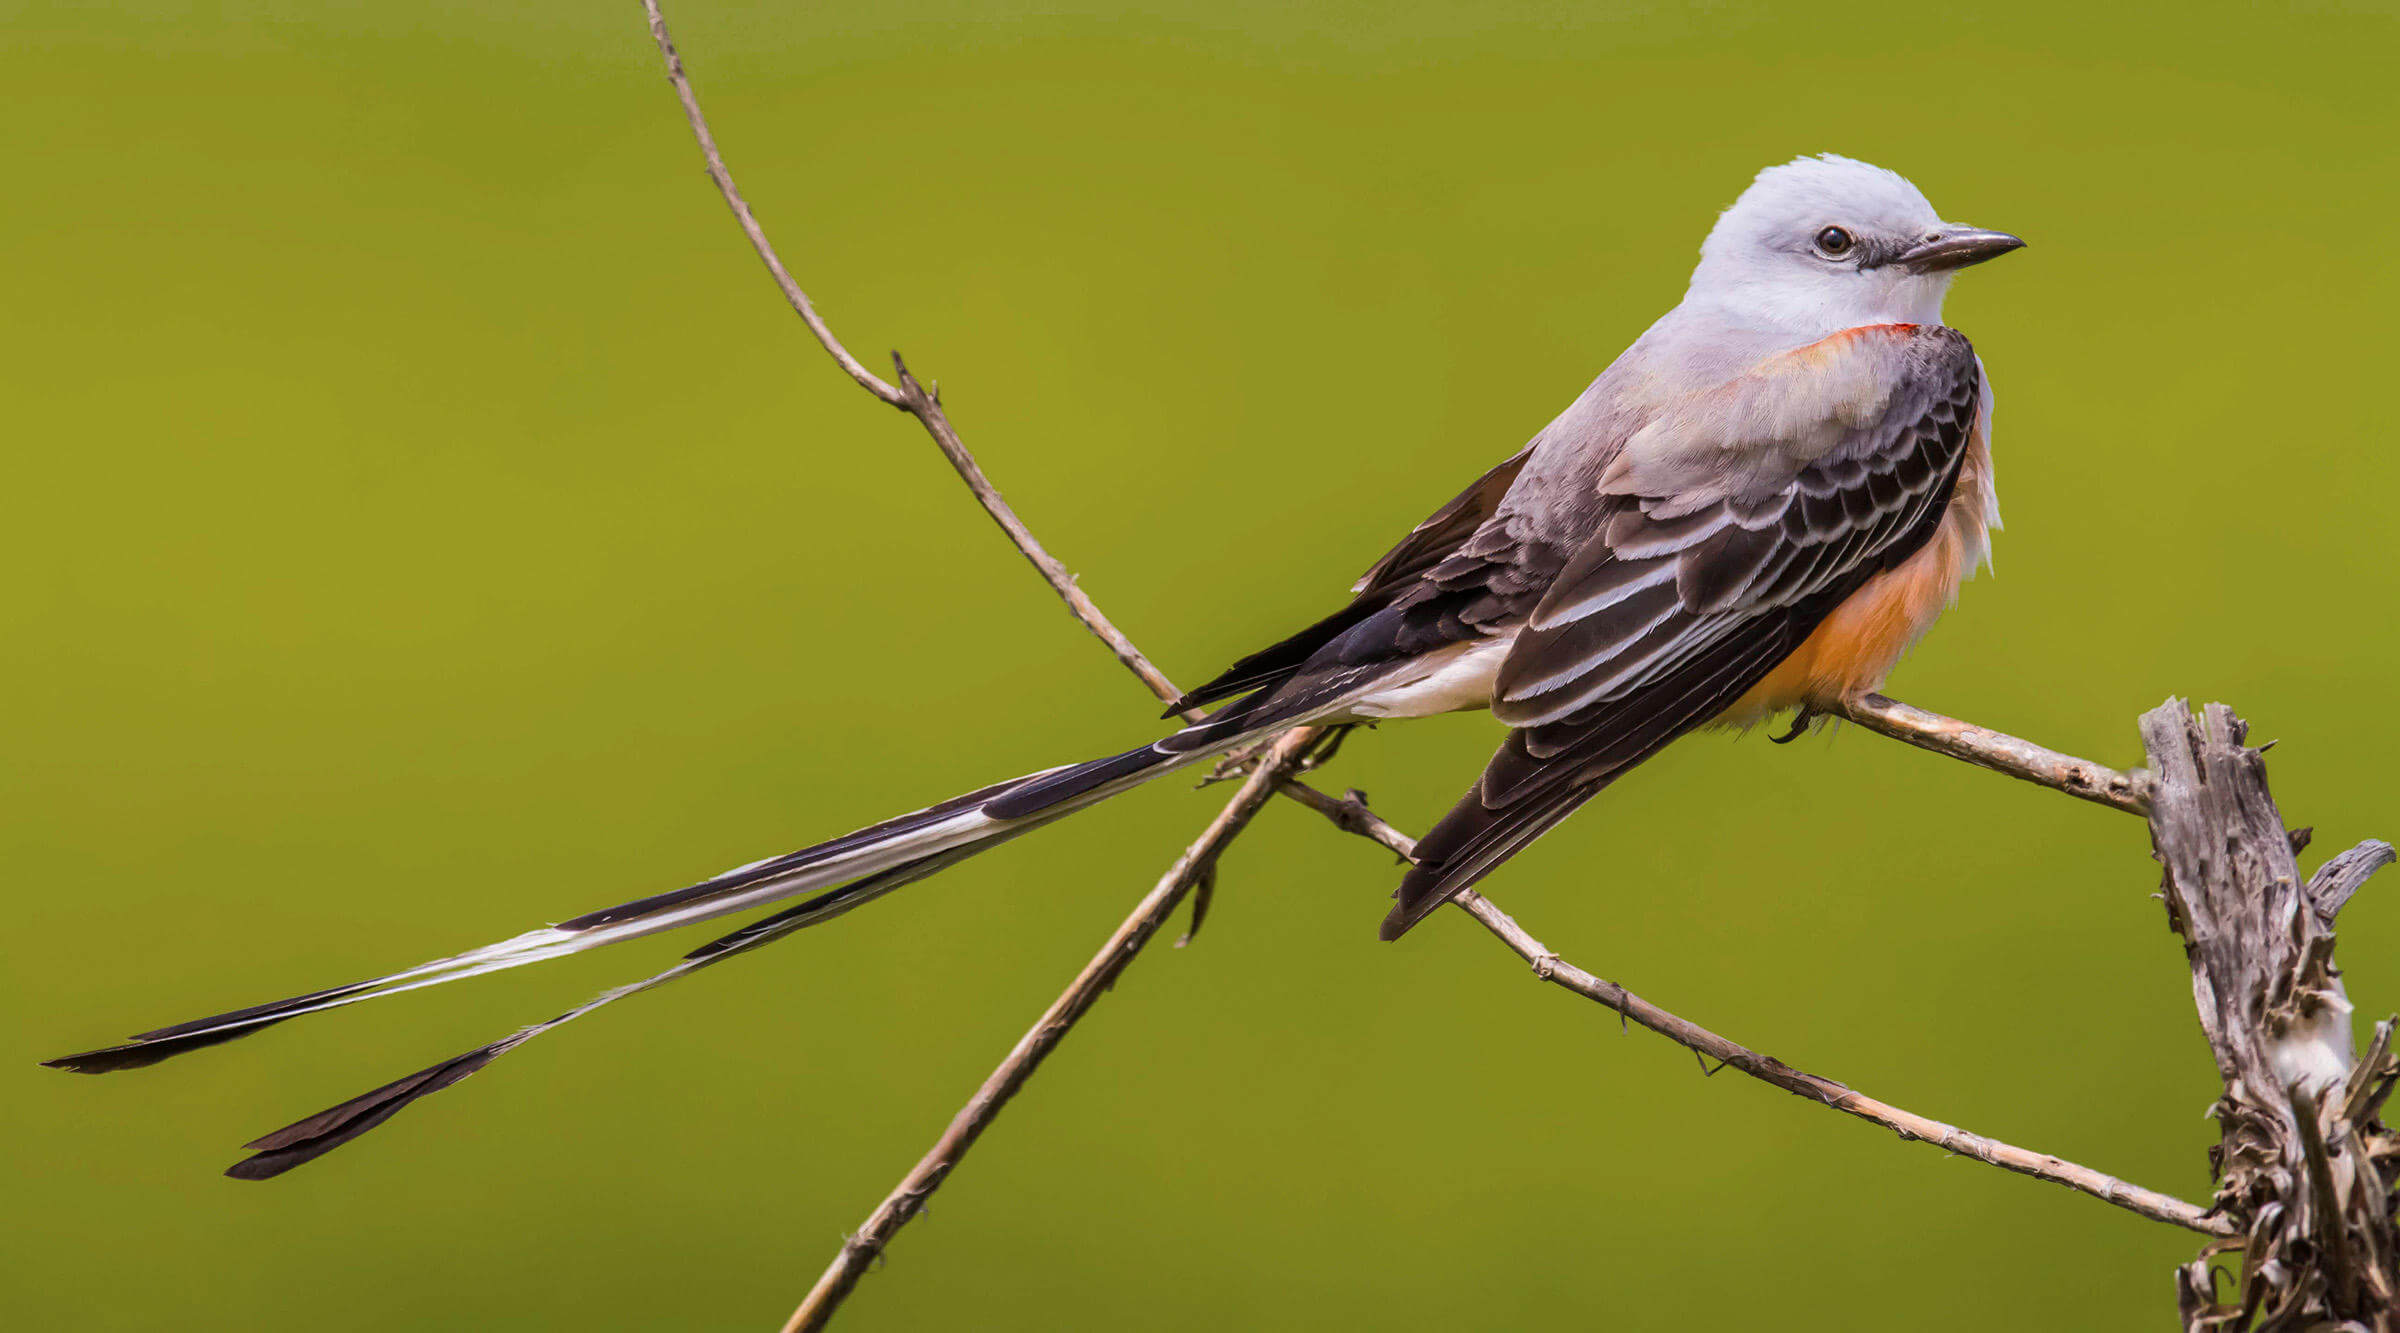 Physical description of Scissor-tailed flycatcher